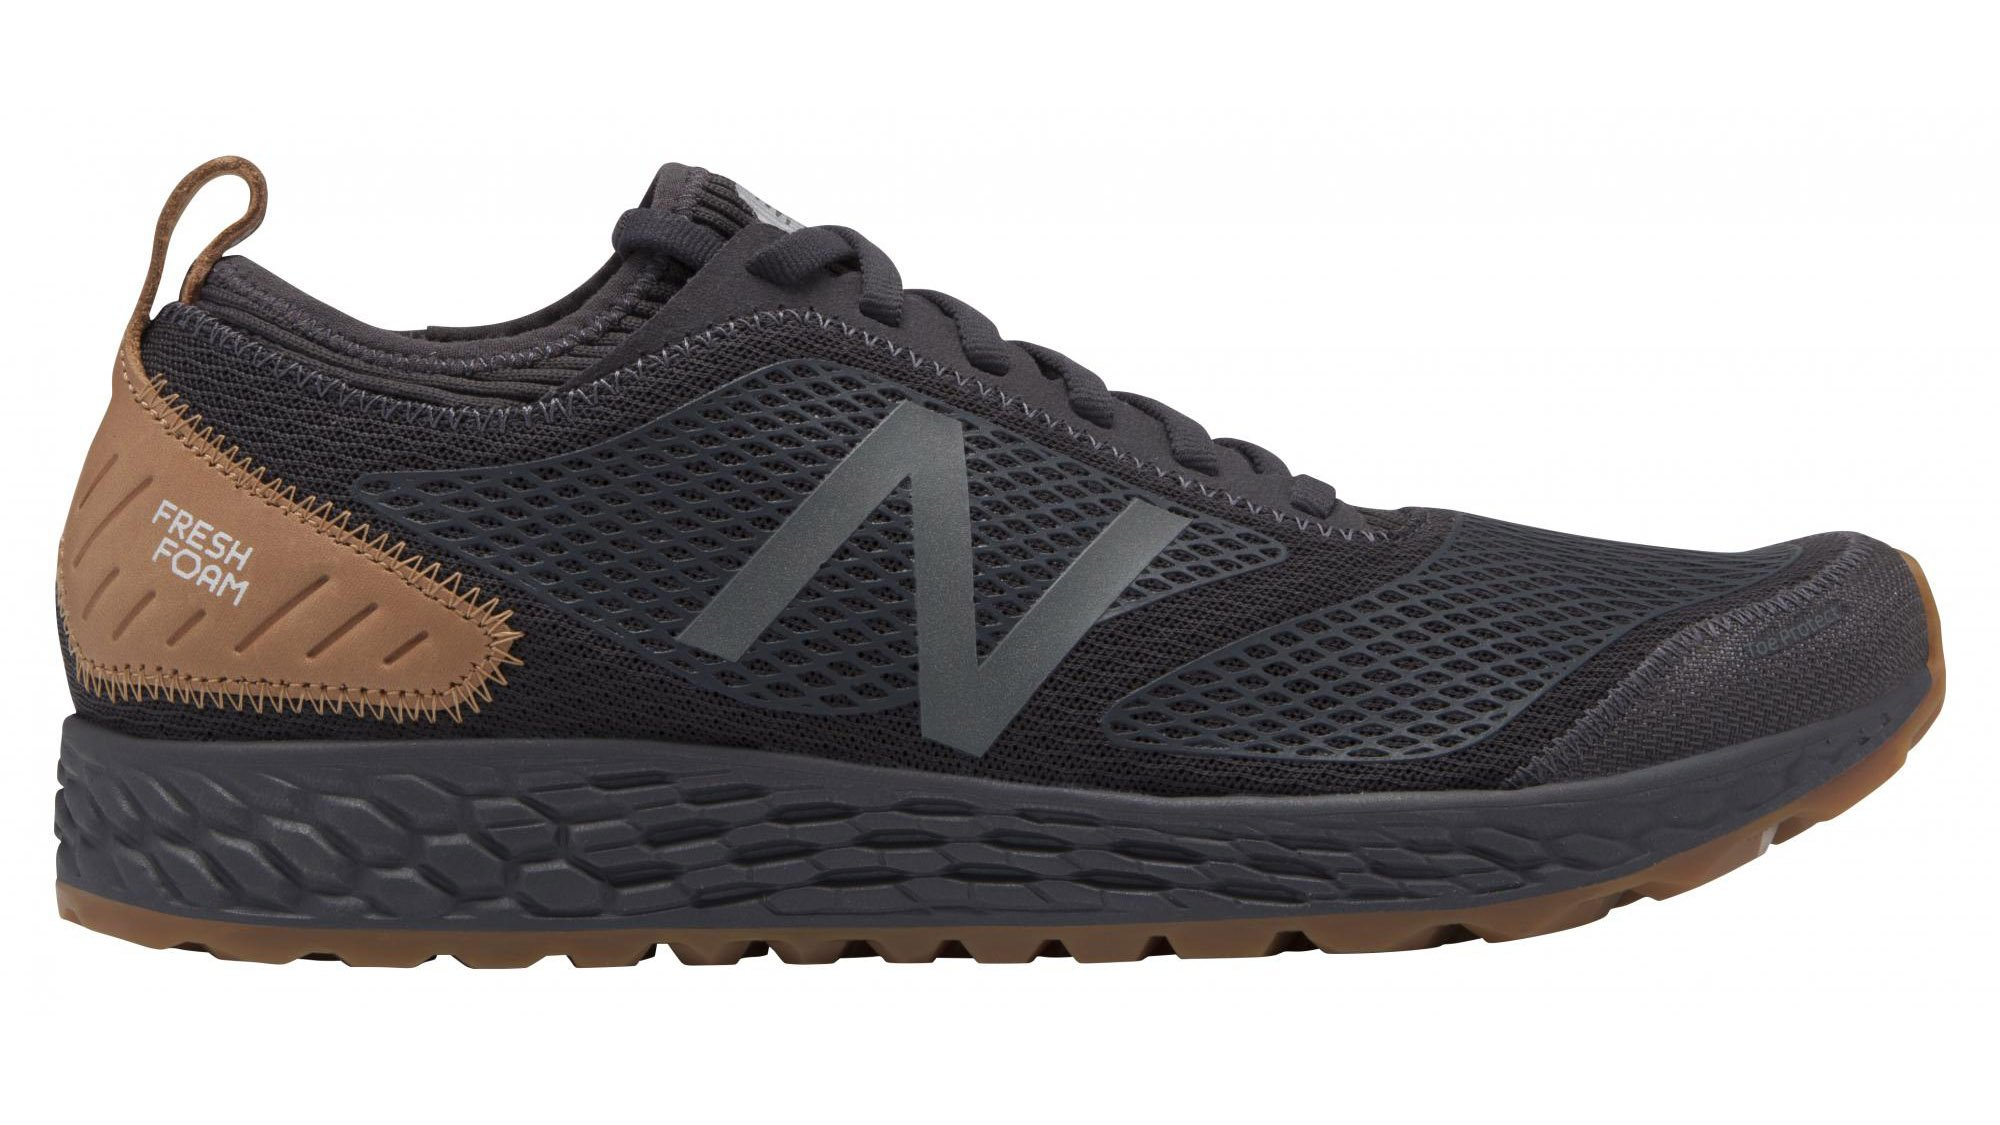 timeless design 72728 286e9 If you intend to spend as much time running on the road as on trails, but  dont want to splash out on two pairs of shoes, the New Balance Gobi will  be ...